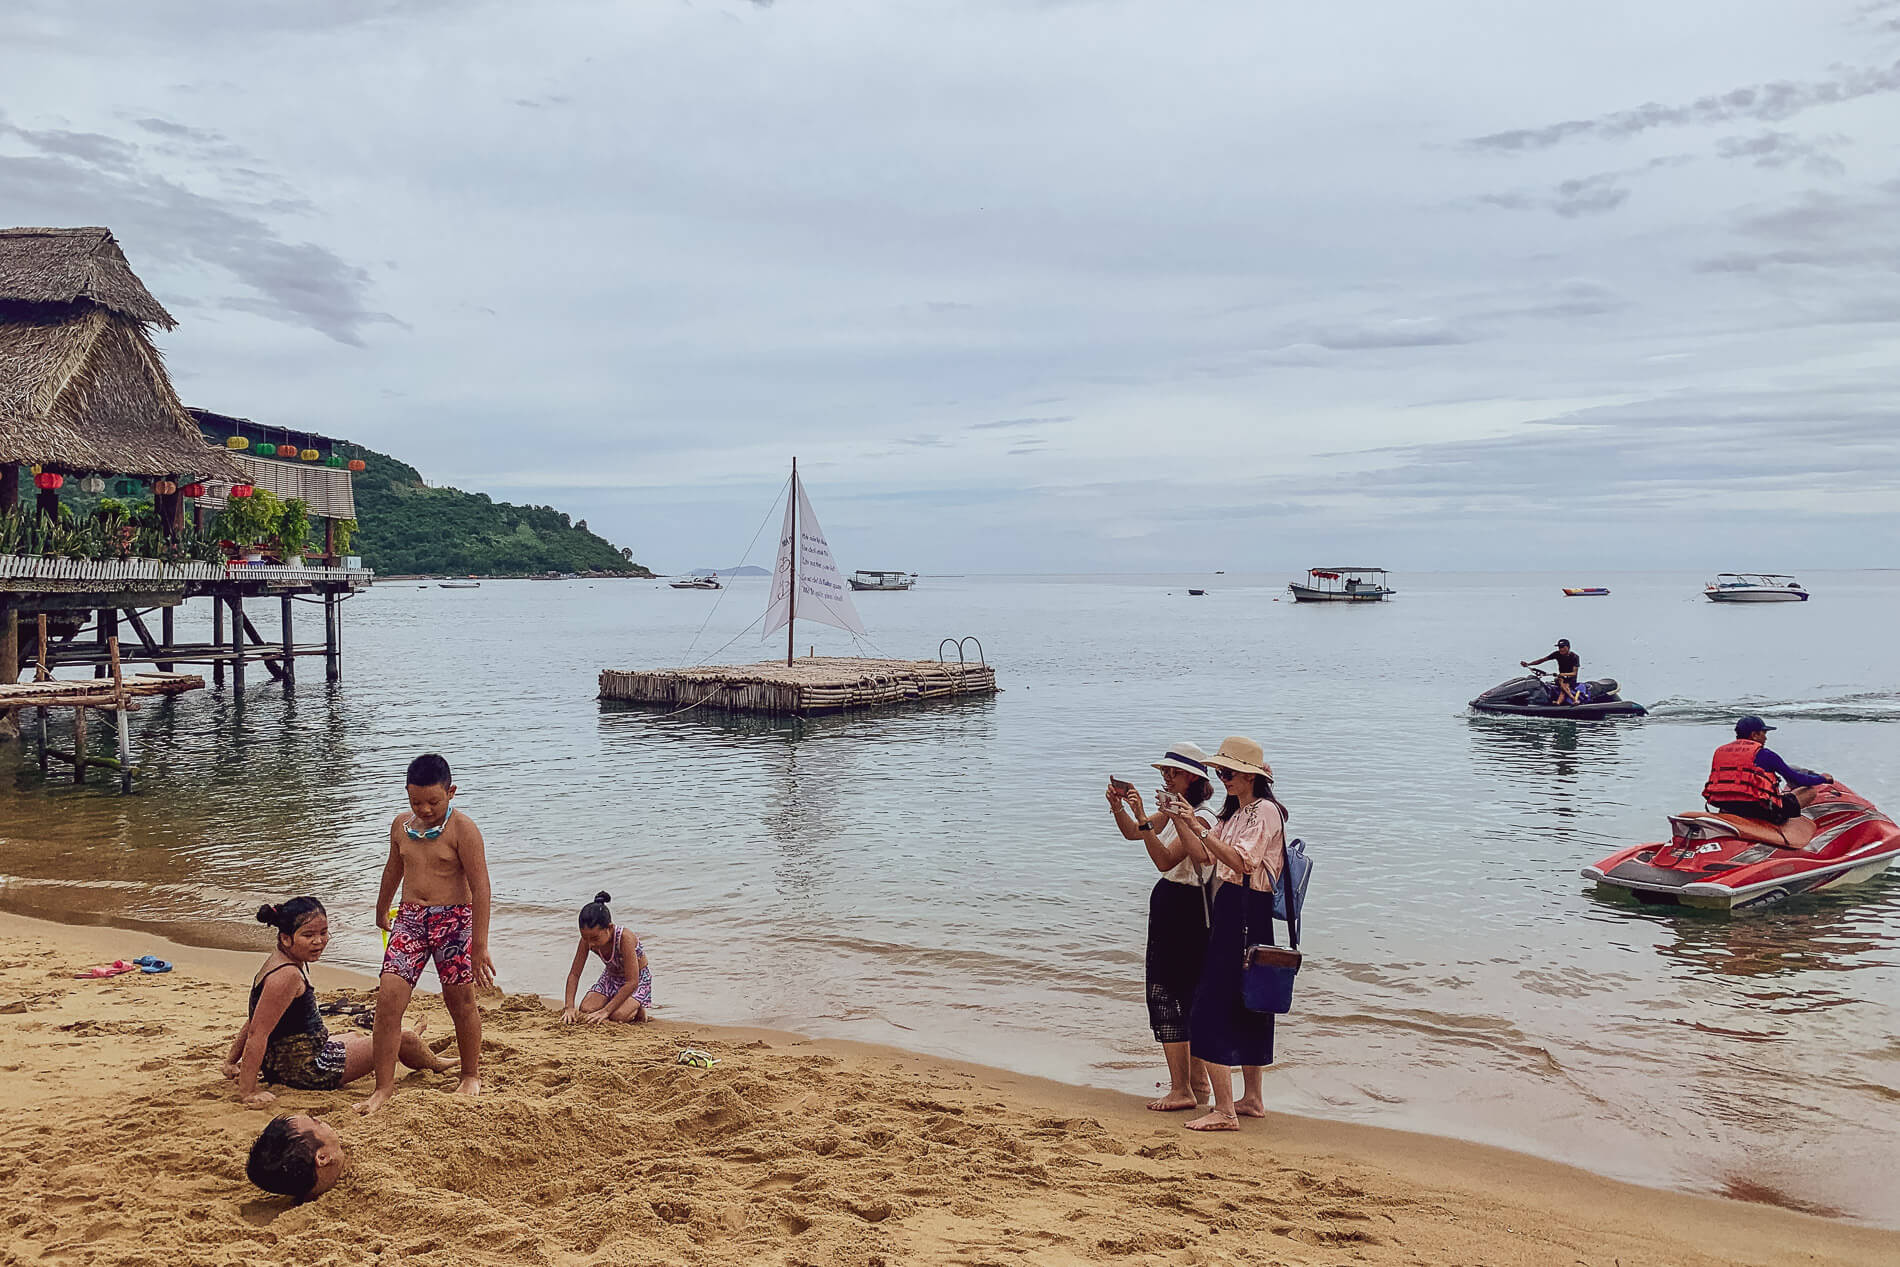 Tourists taking pictures at Da Nang beach